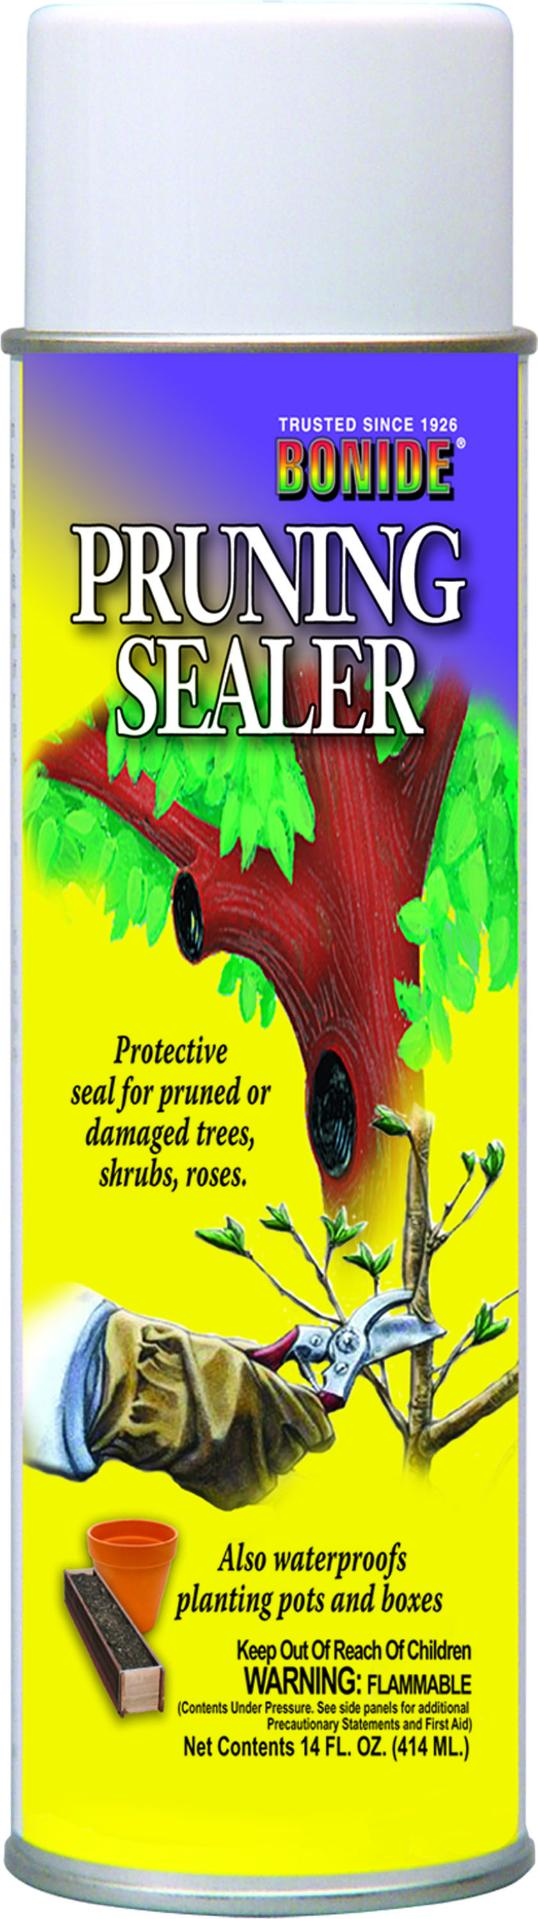 Bonide Products Inc     P - Pruning Sealer Aerosol